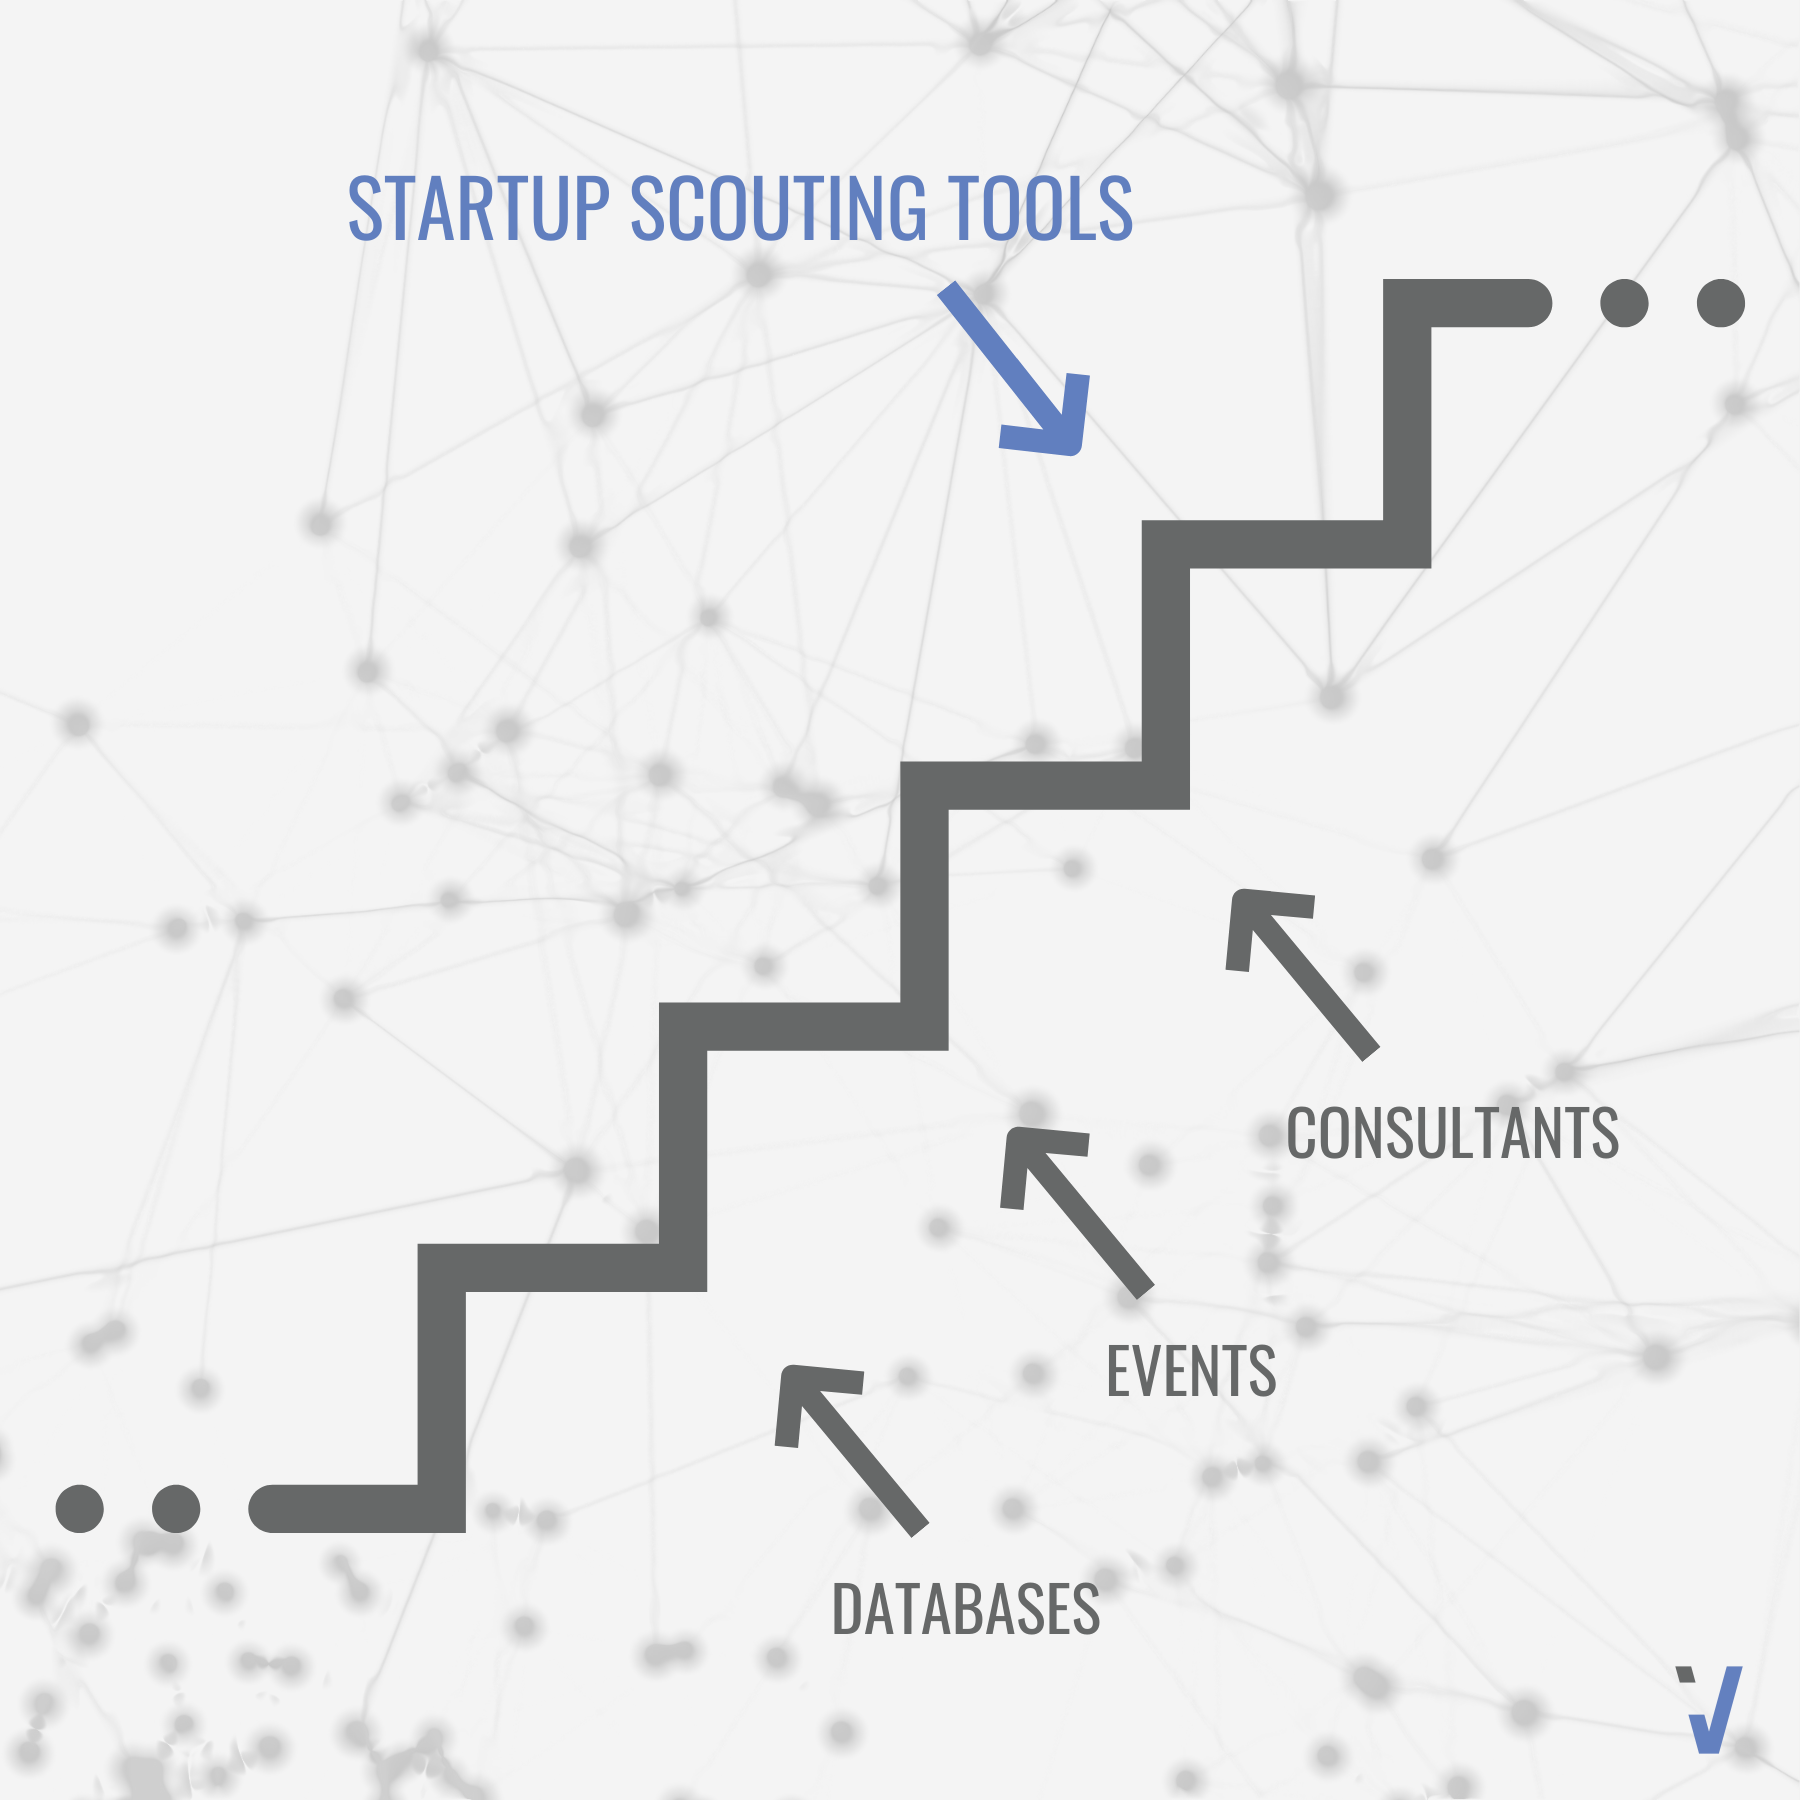 What is startup scouting